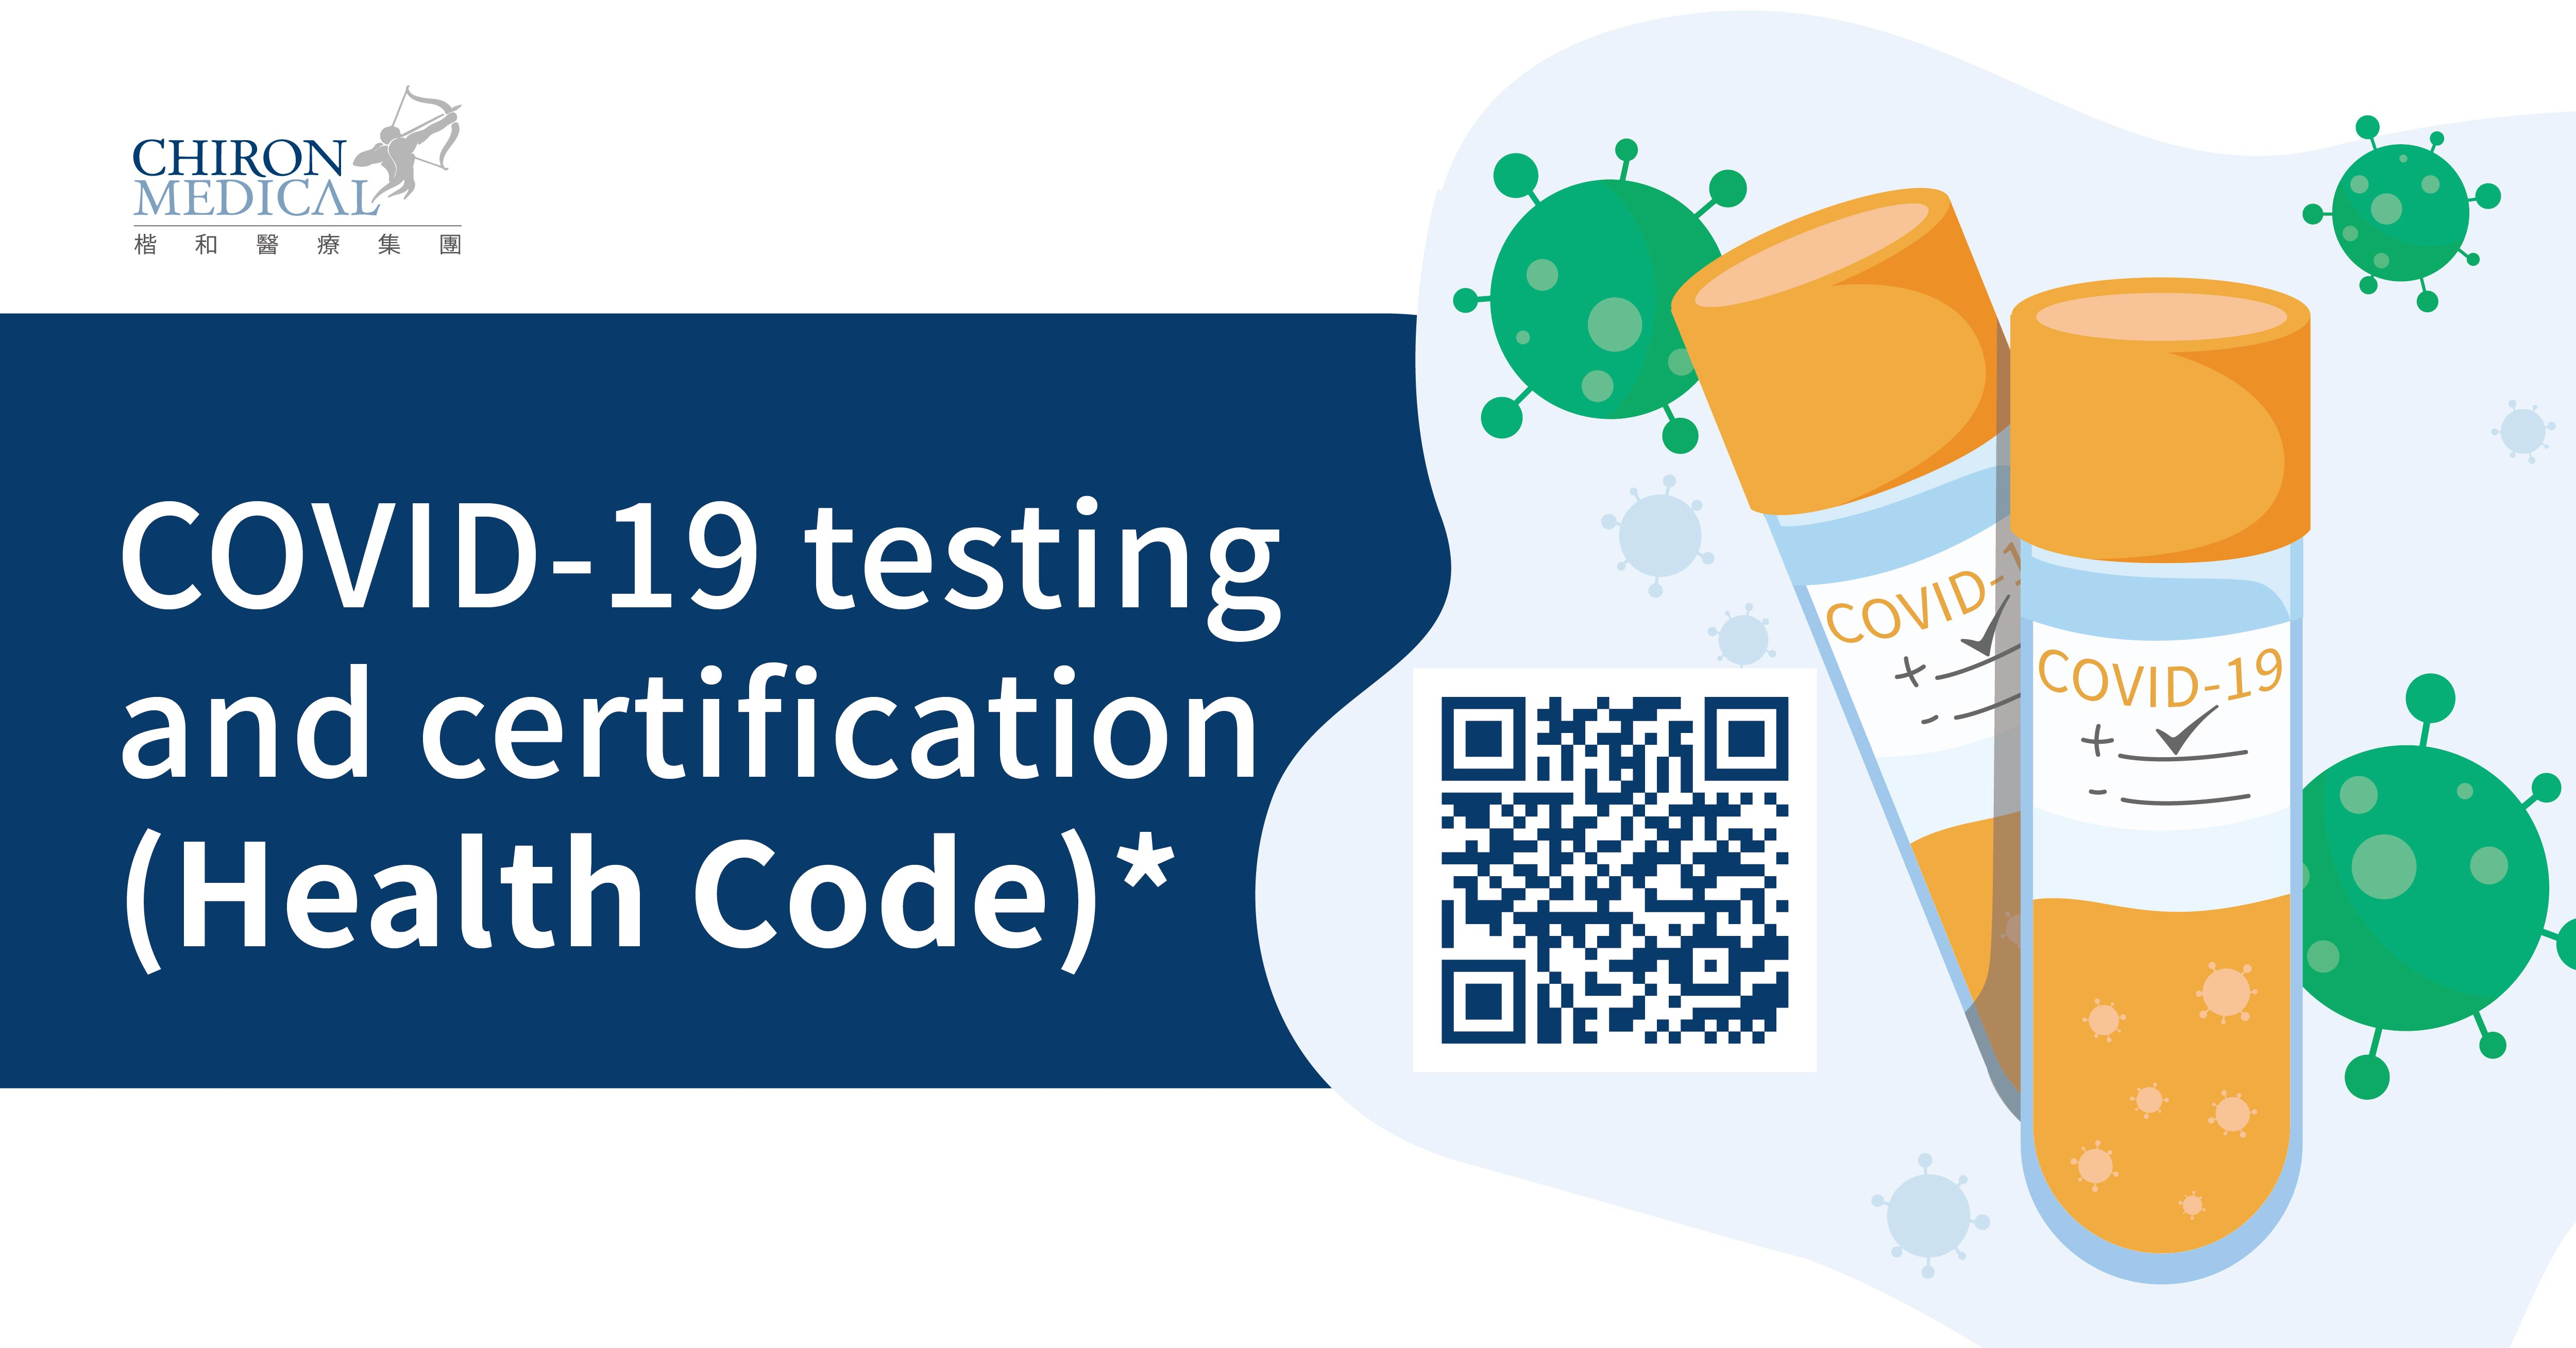 COVID-19 testing and certification (Health Code)*